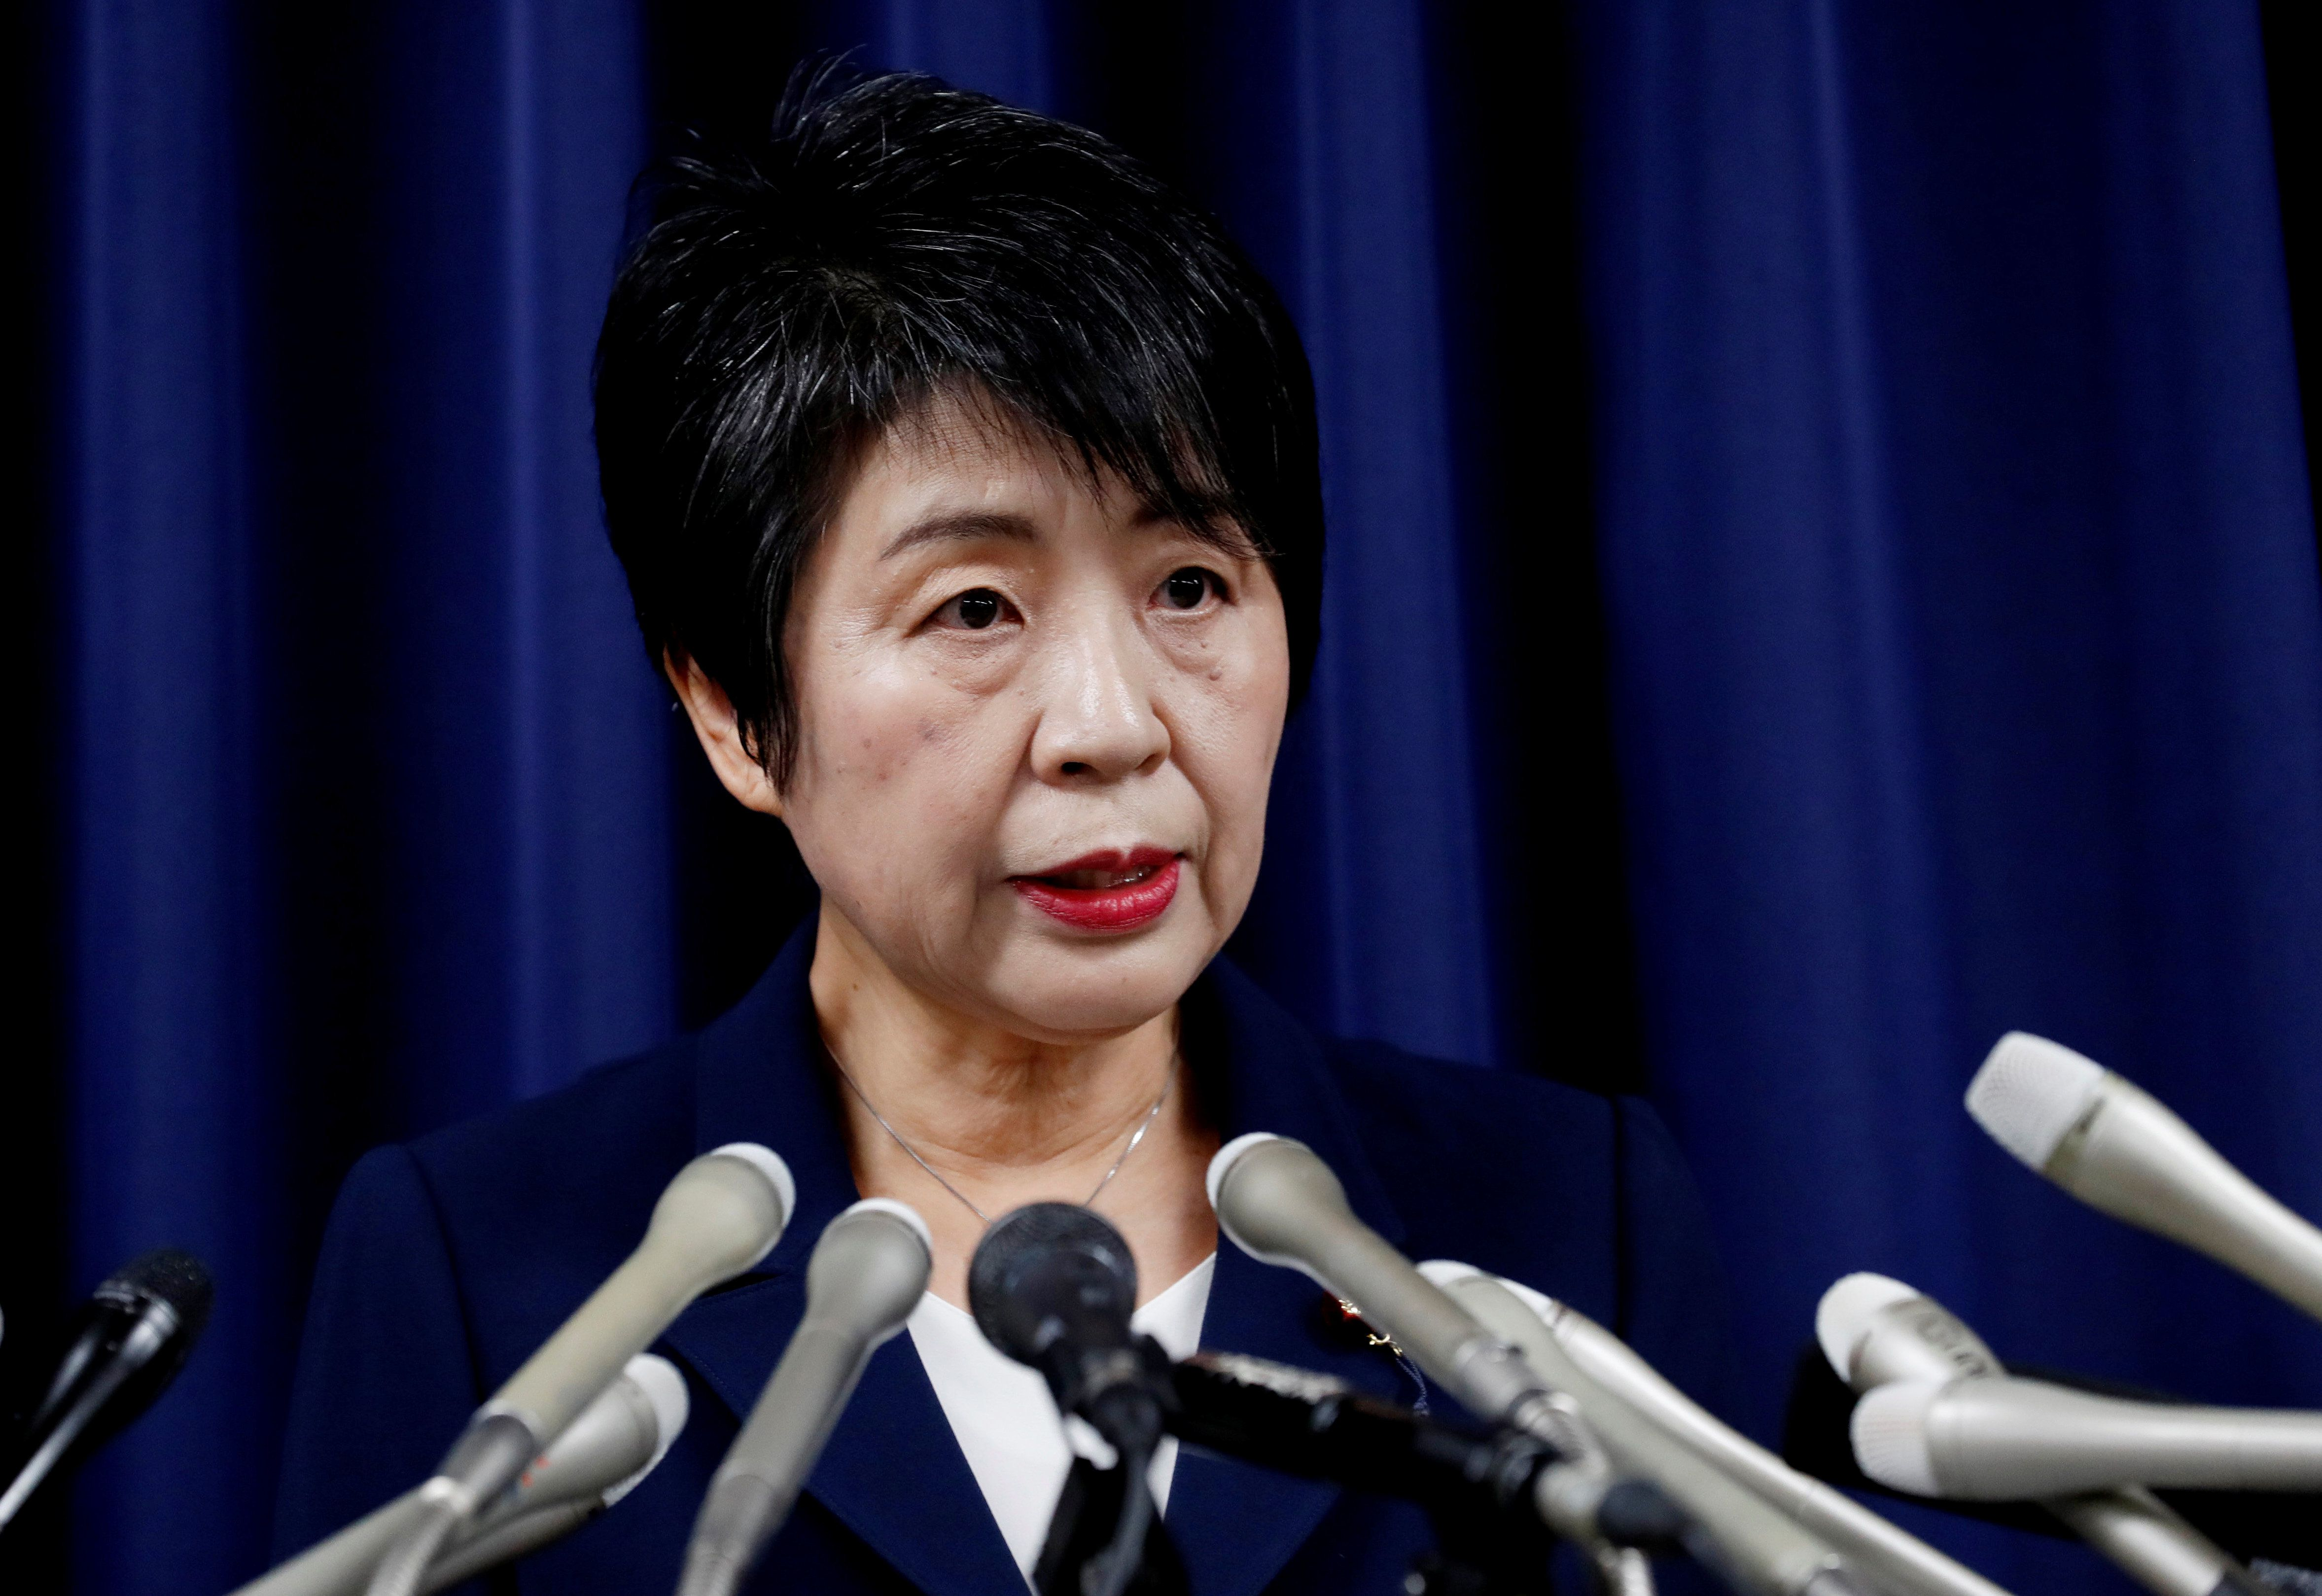 Justice Minister Yoko Kamikawa called their crimes unprecedentedly heinous and said they should never be repeated.